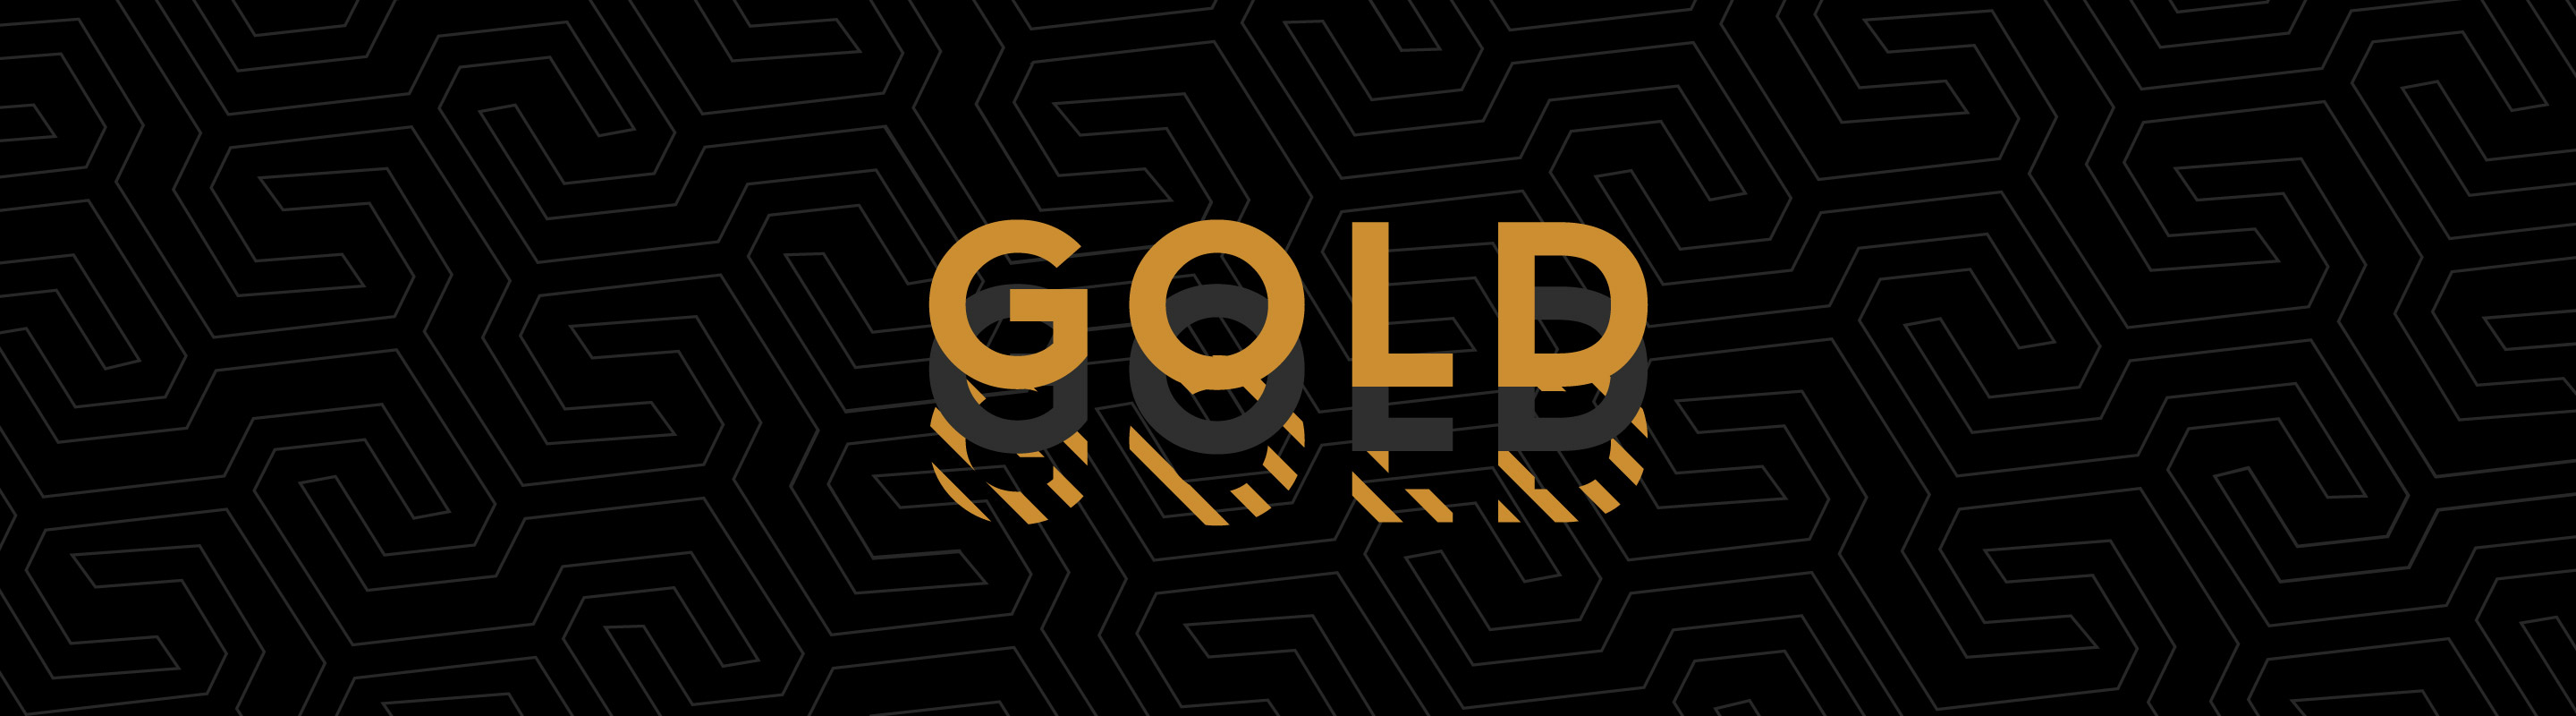 Gold Pass Image